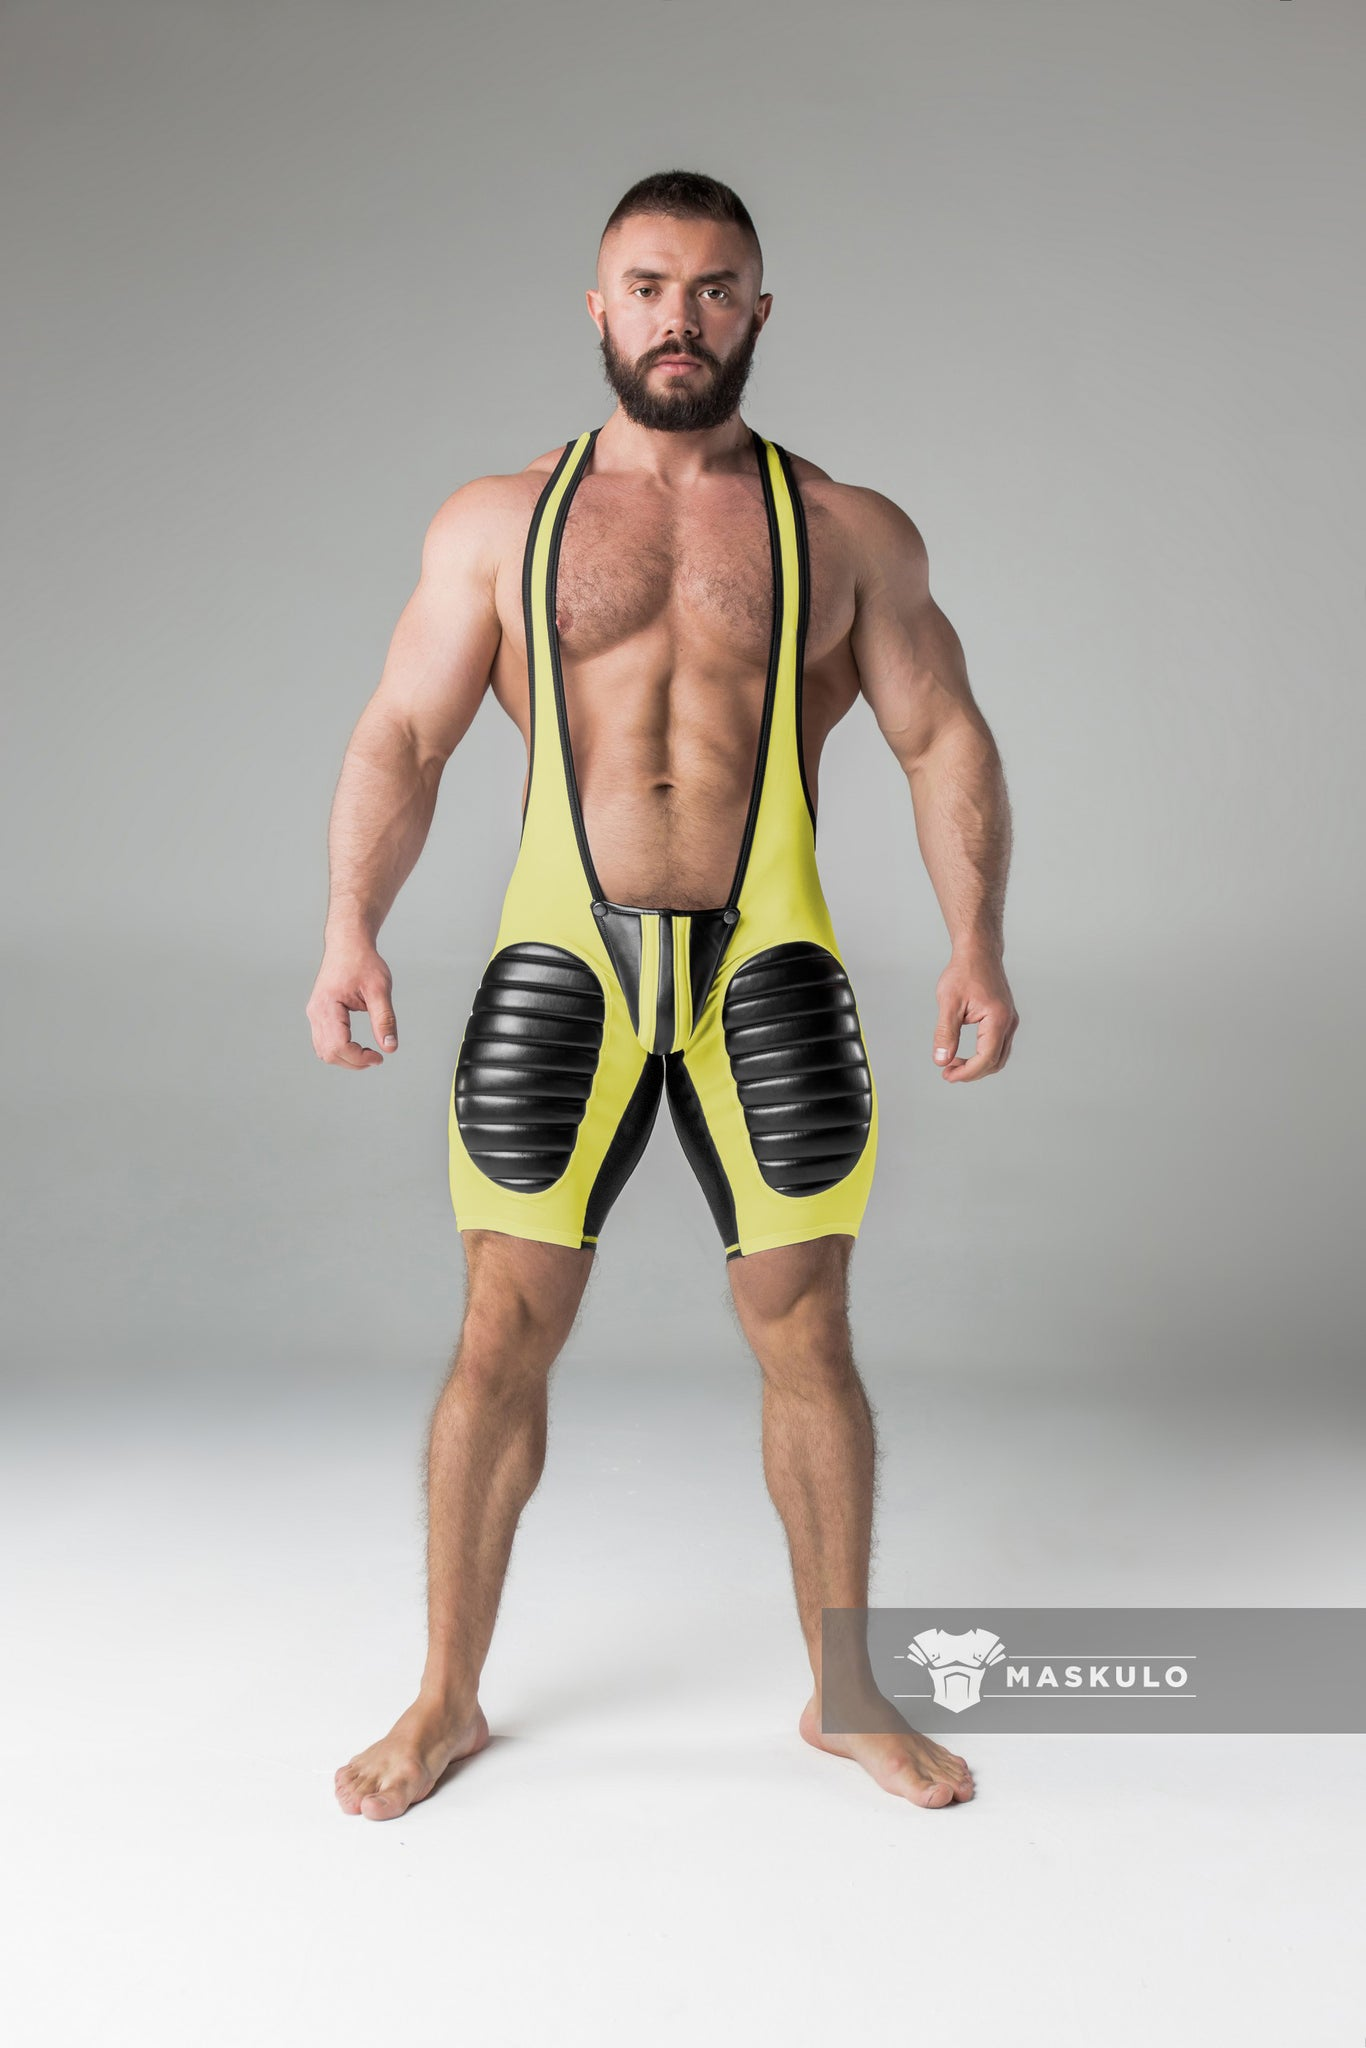 Markdown. Men's Fetish Wrestling Singlet. Codpiece, Open rear, Thigh pads. Faux leather stripe.